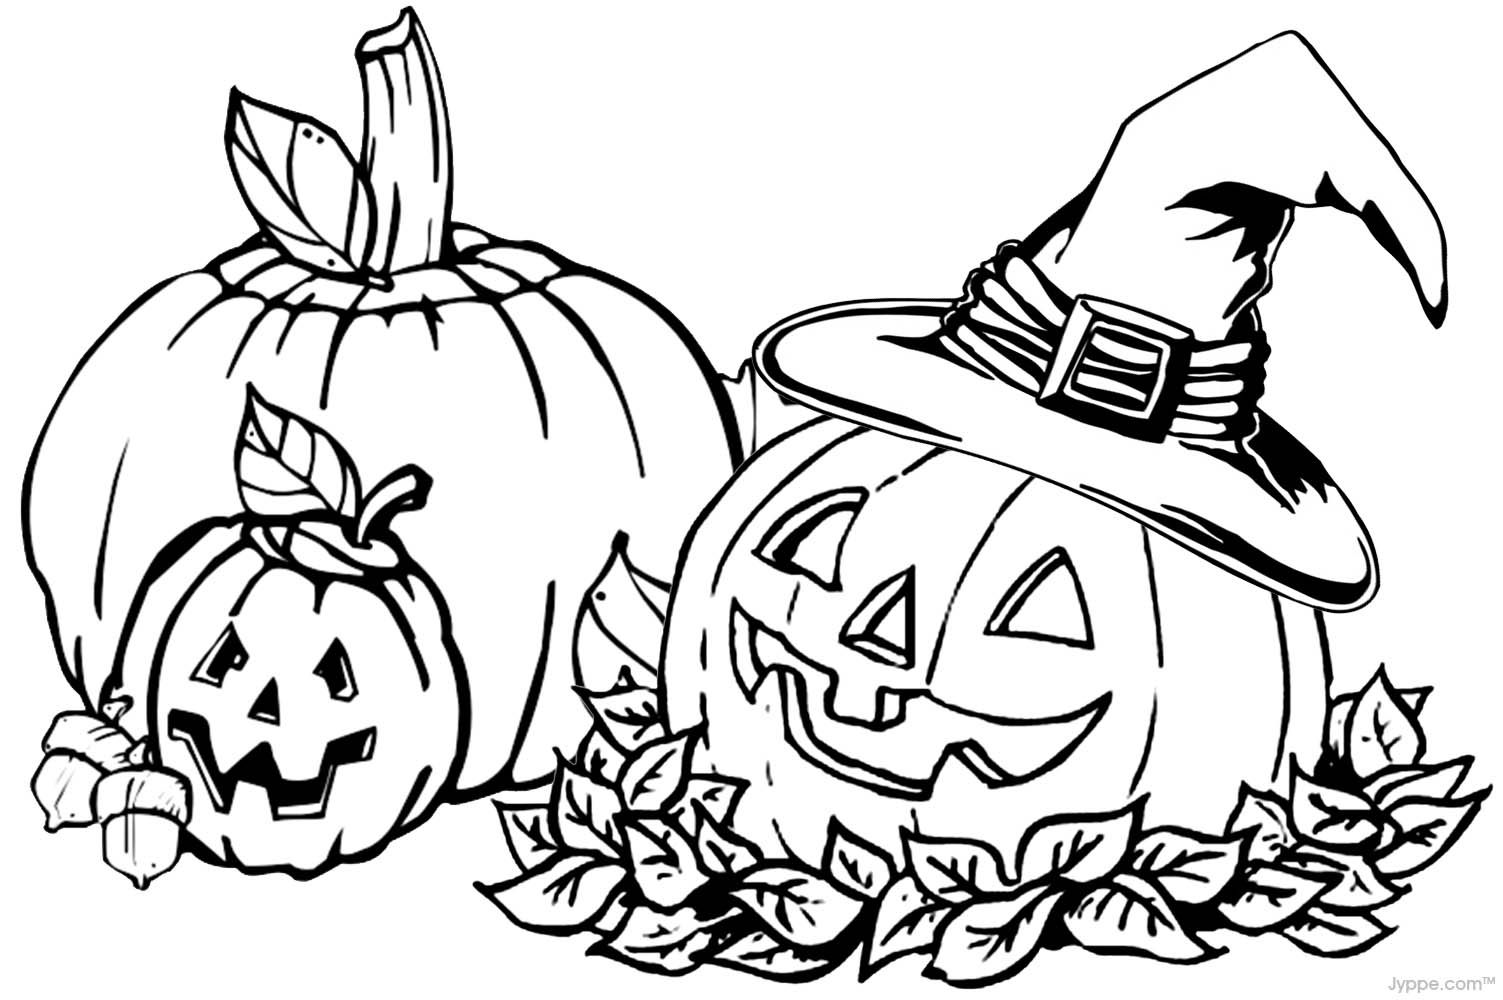 Christian Coloring Pages Pdf : Christian pumpkin printable coloring pages